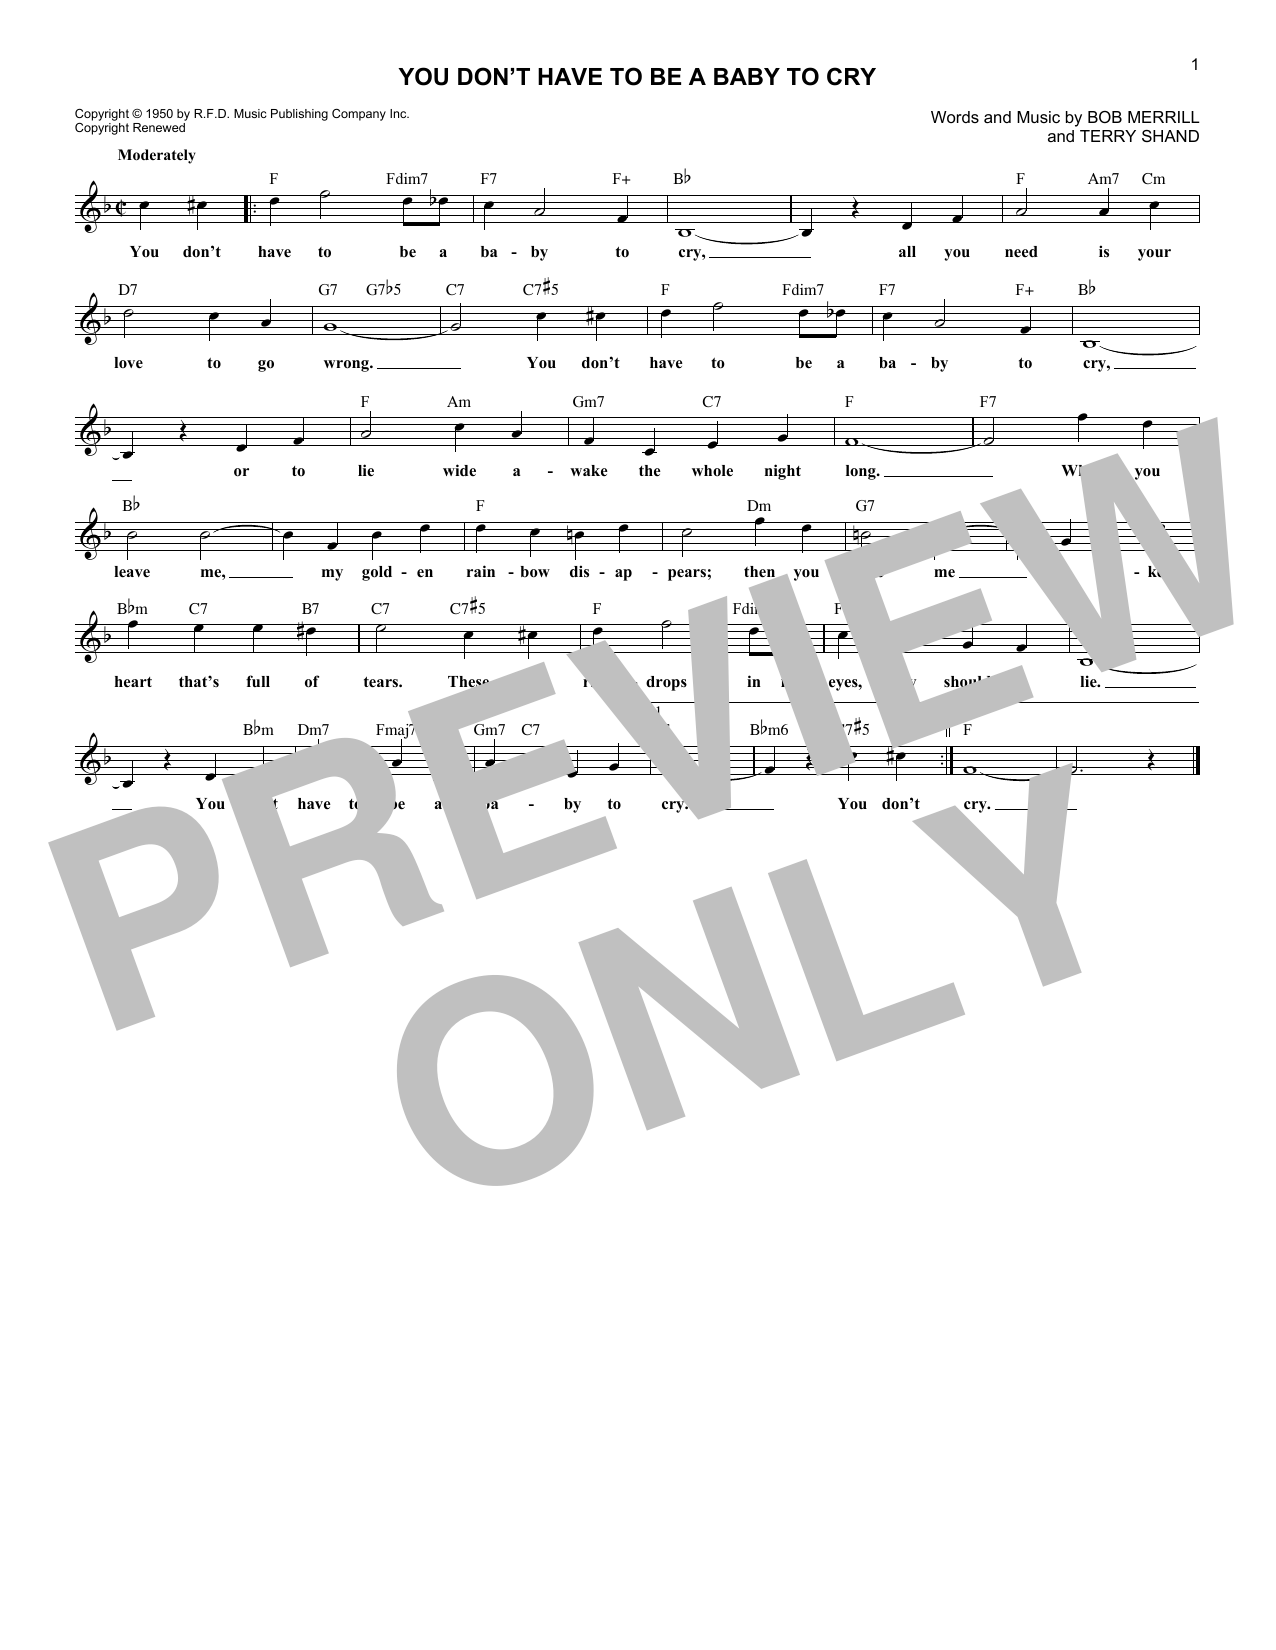 You Don't Have To Be A Baby To Cry Sheet Music